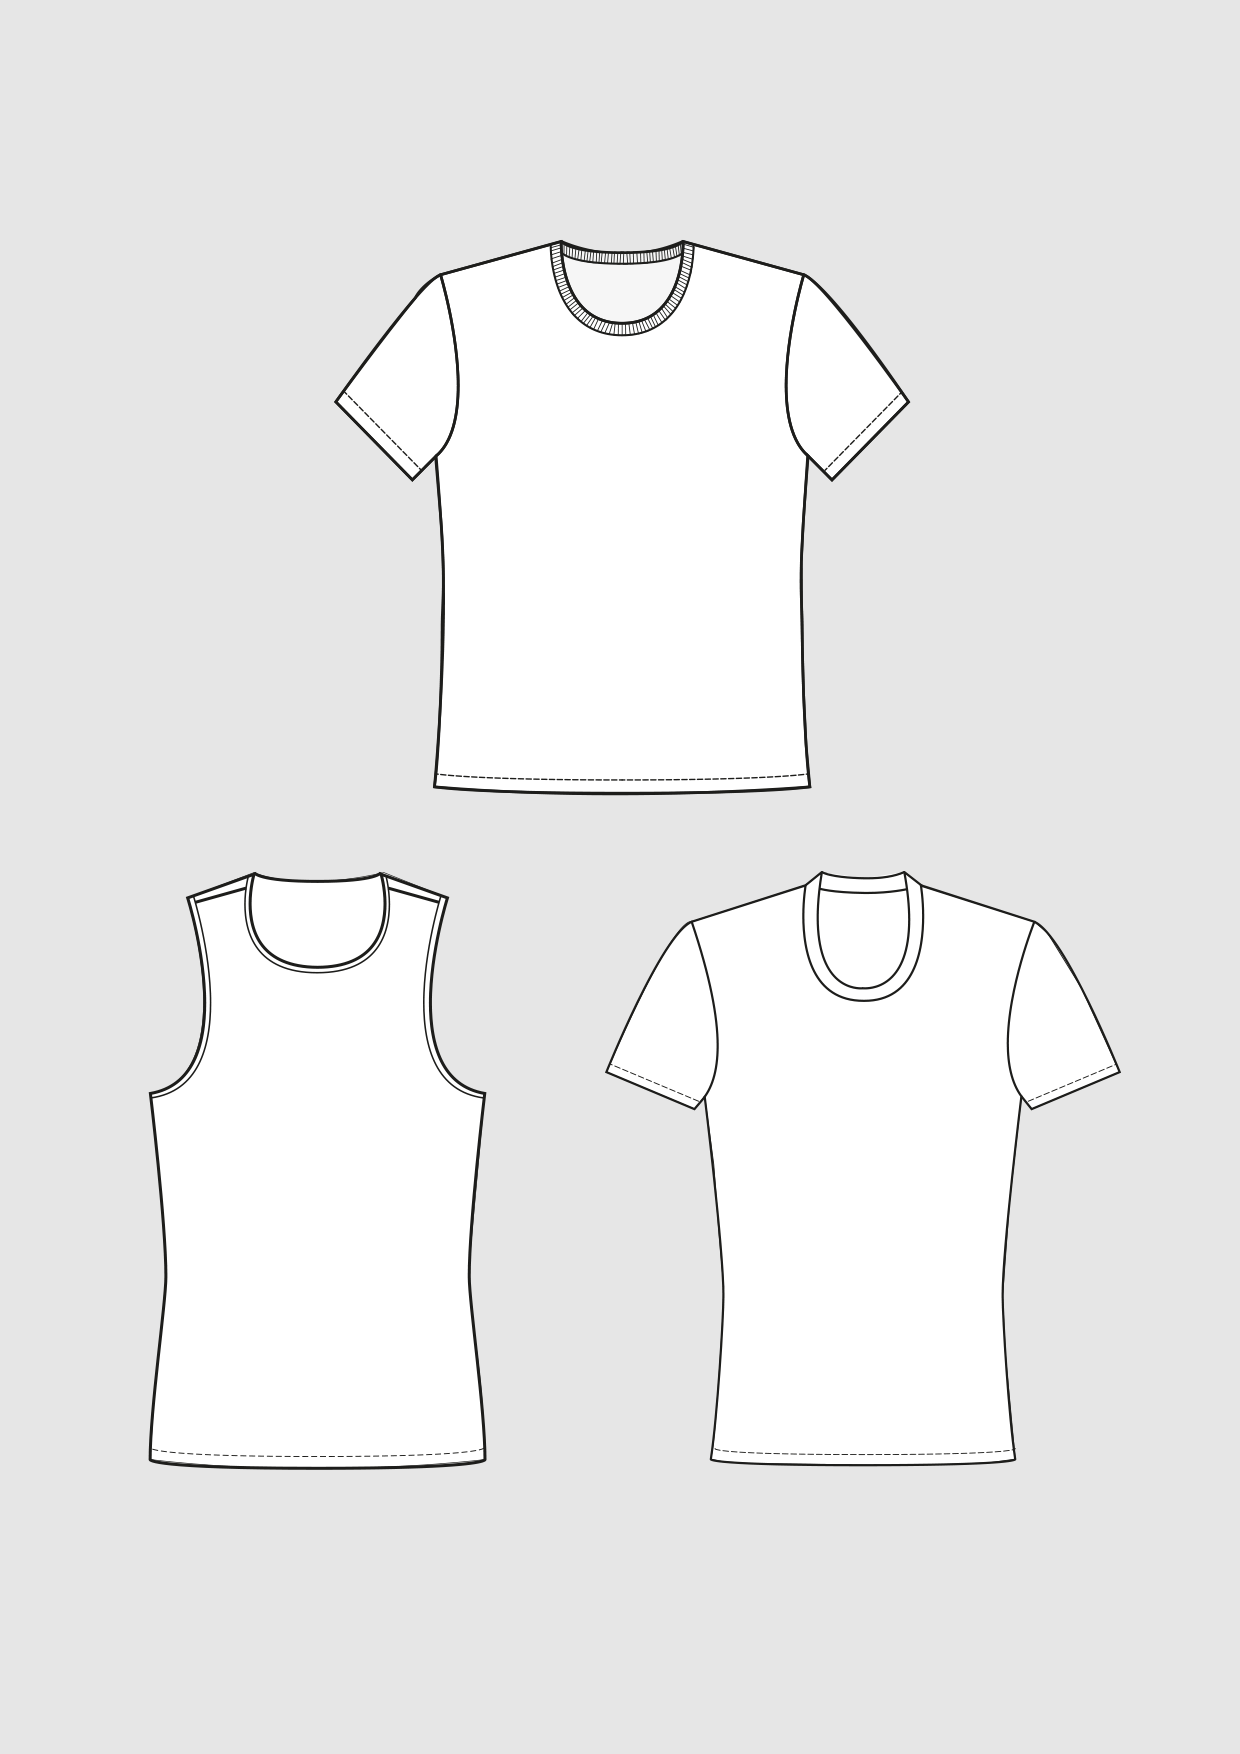 Product: Pattern Basic Shirt and Top Block